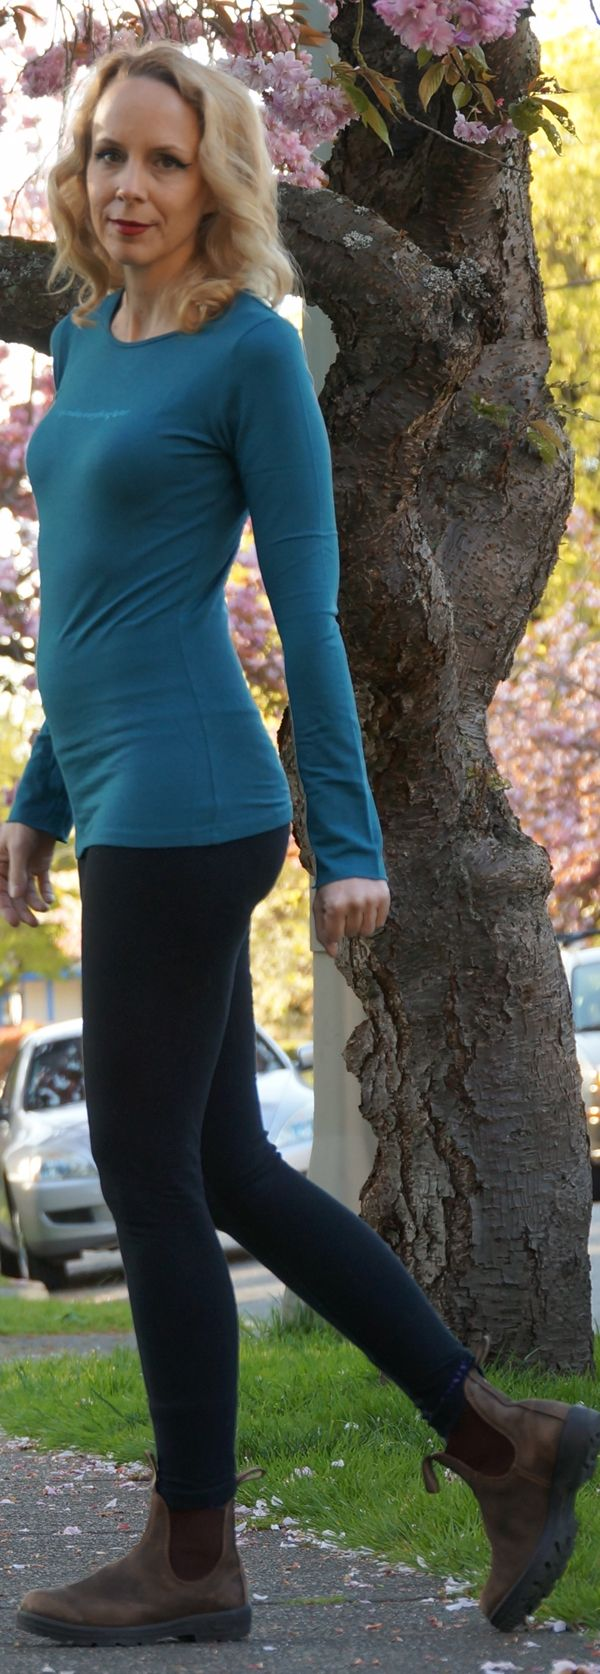 Teal Bamboo Long Sleeve Tee with Yoga Makes Everything Better from Squeezed Yoga Clothing  http://squeezed.ca/shop/deep-teal-bamboo-long-sleeve-tee-with-yoga-makes-everything-better